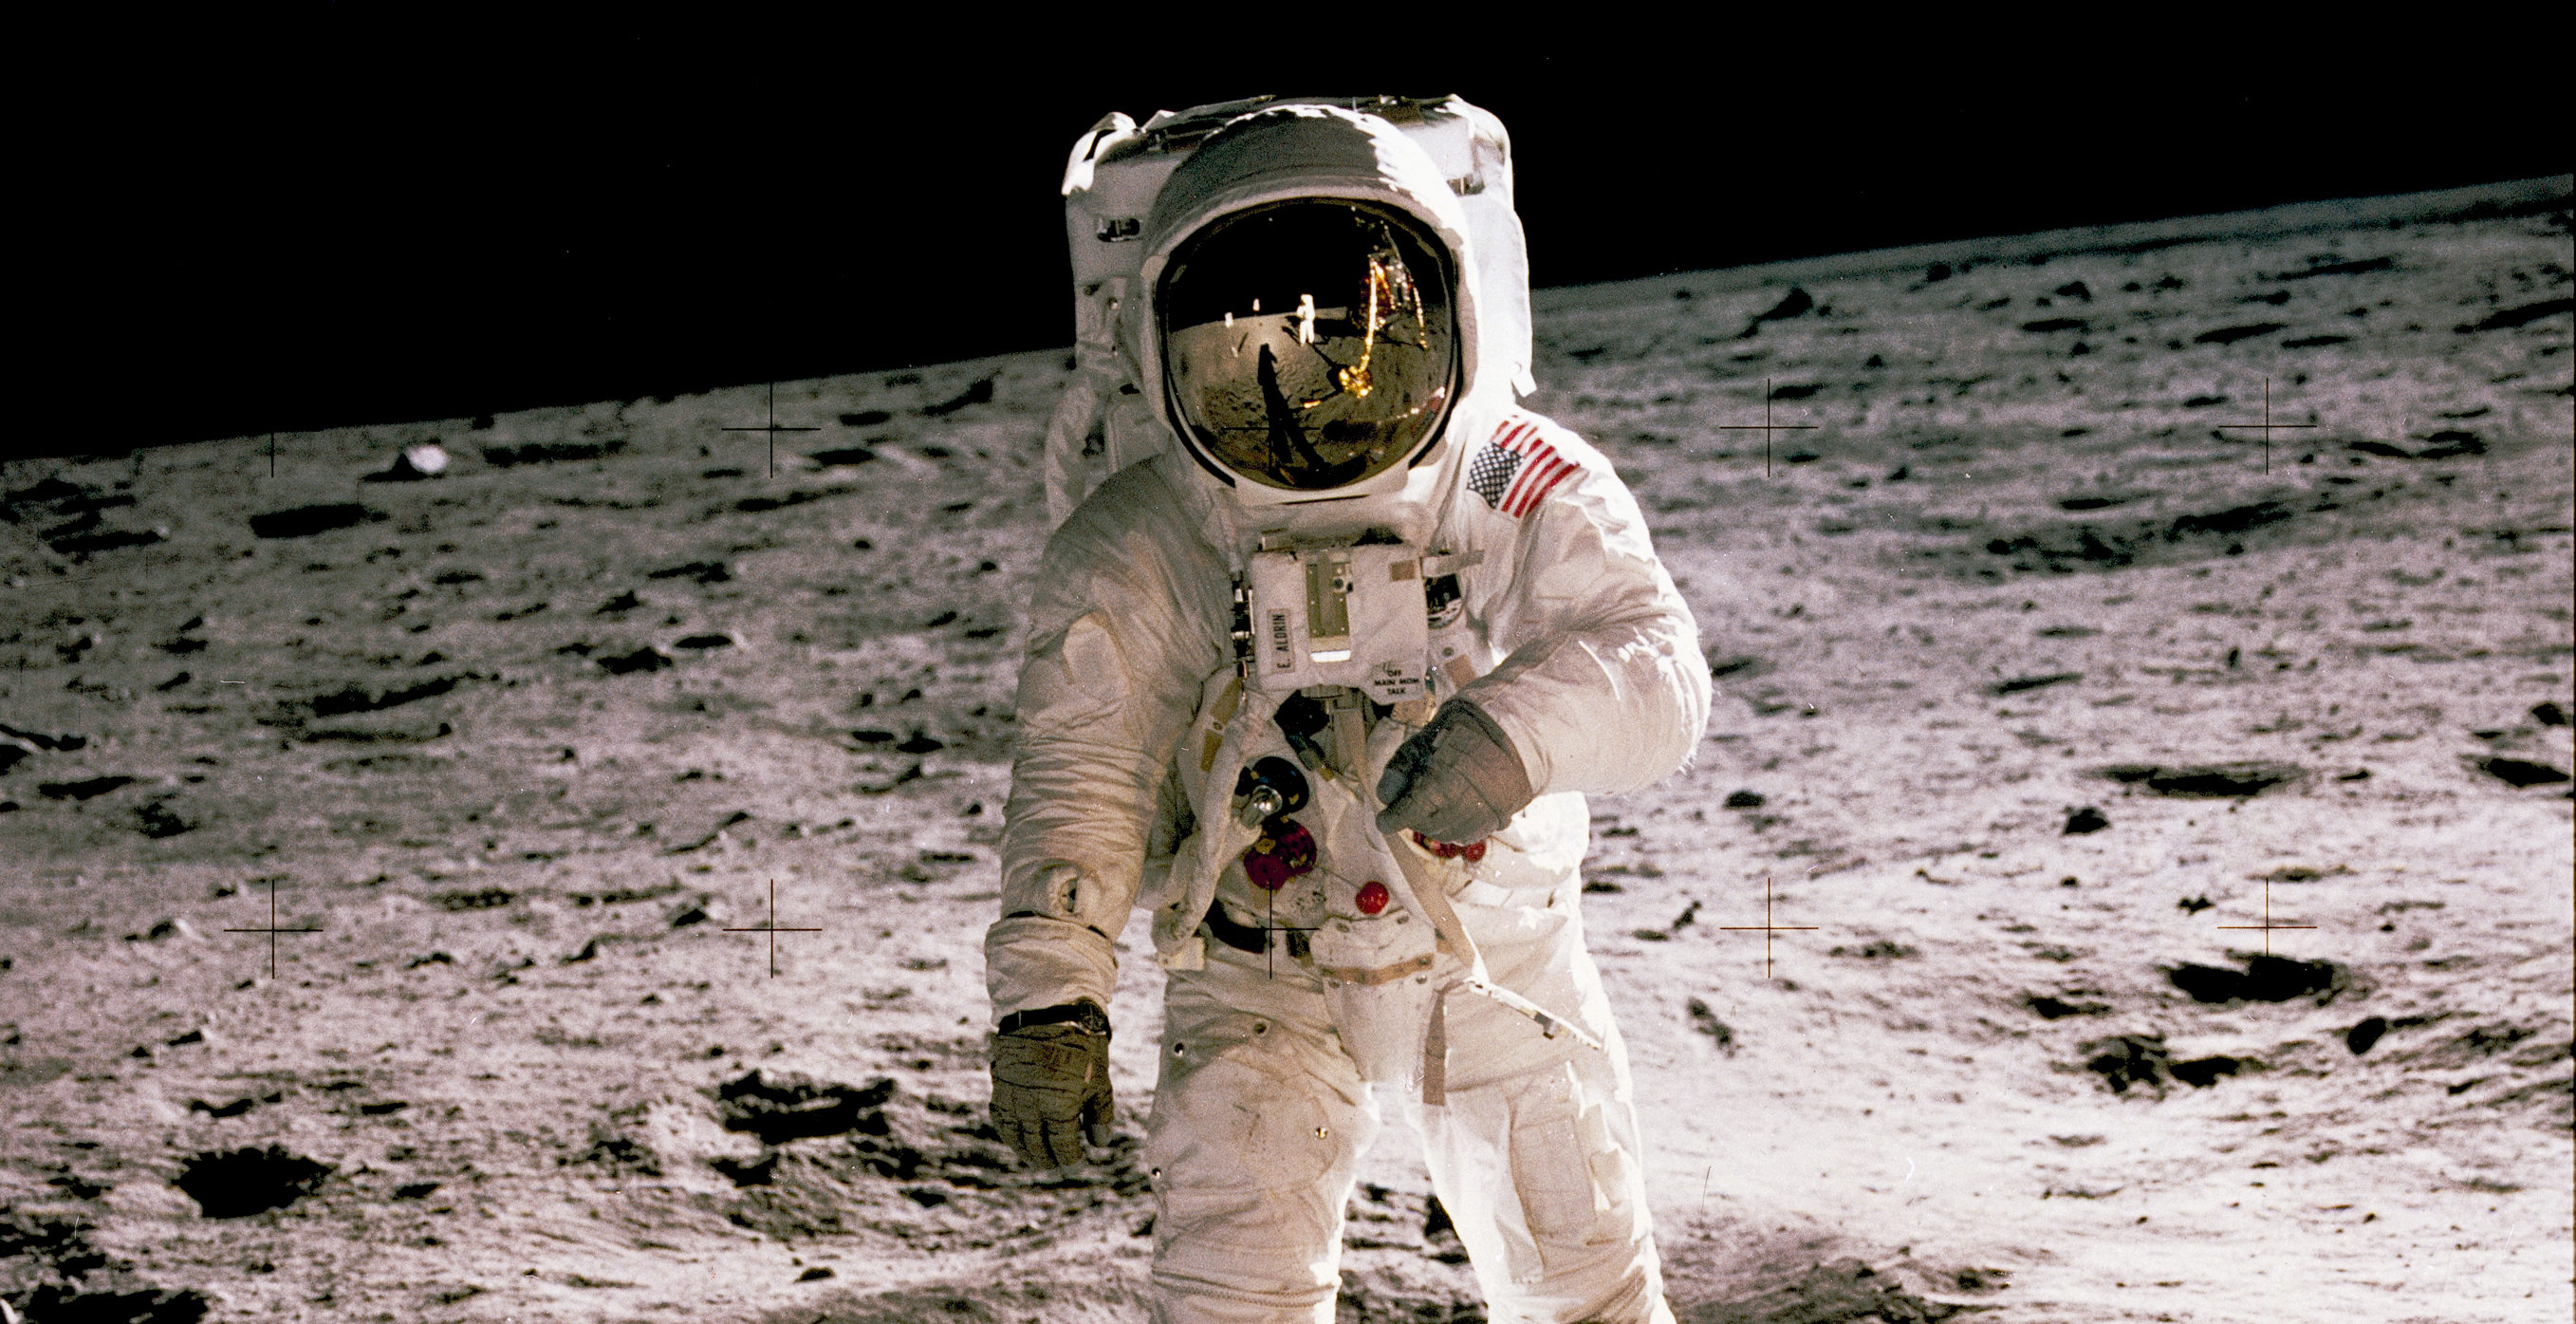 APOLLO 11 ONBOARD: ASTRONAUT ALDRIN, EDWIN WALKING ON LUNAR SURFACE.